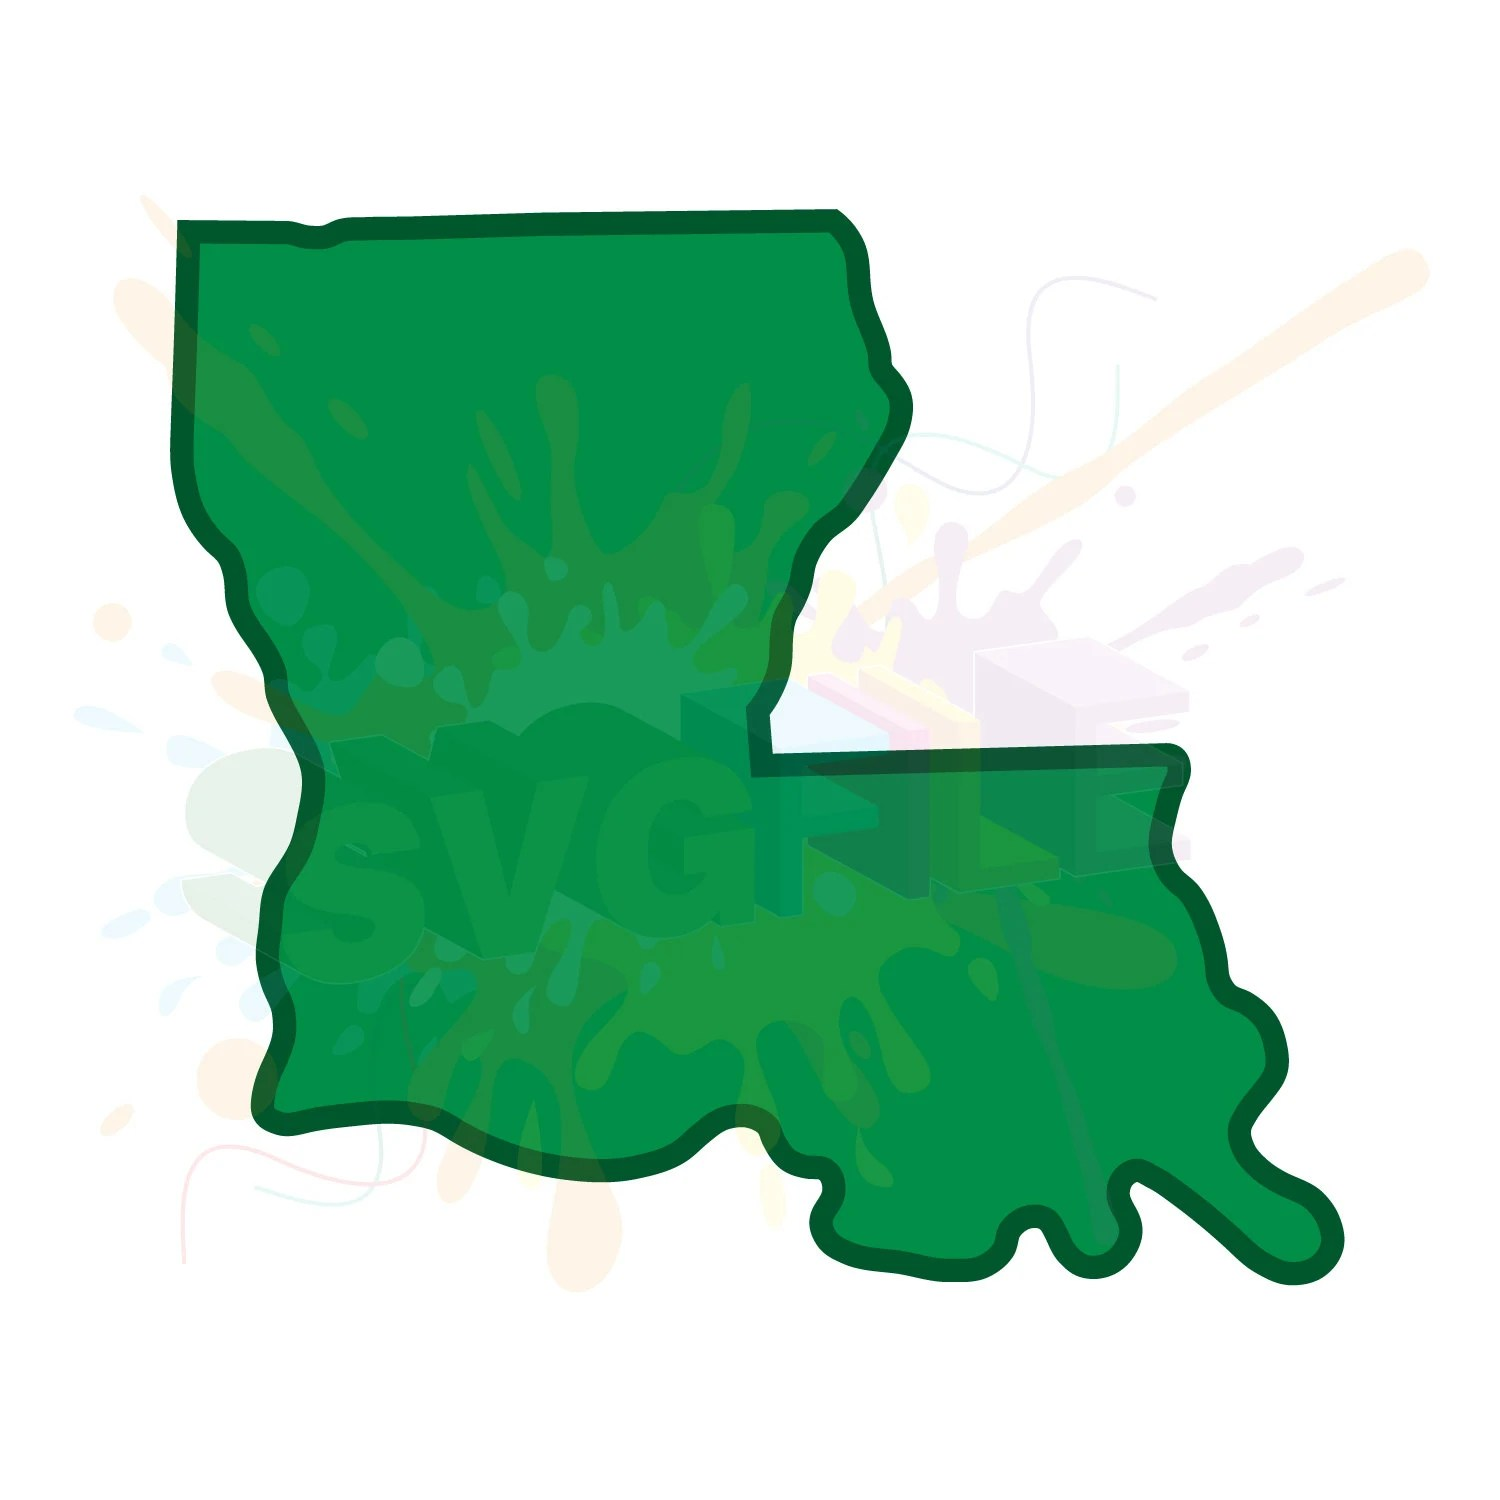 Louisiana SVG Files for Cutting Southern Cricut State Designs